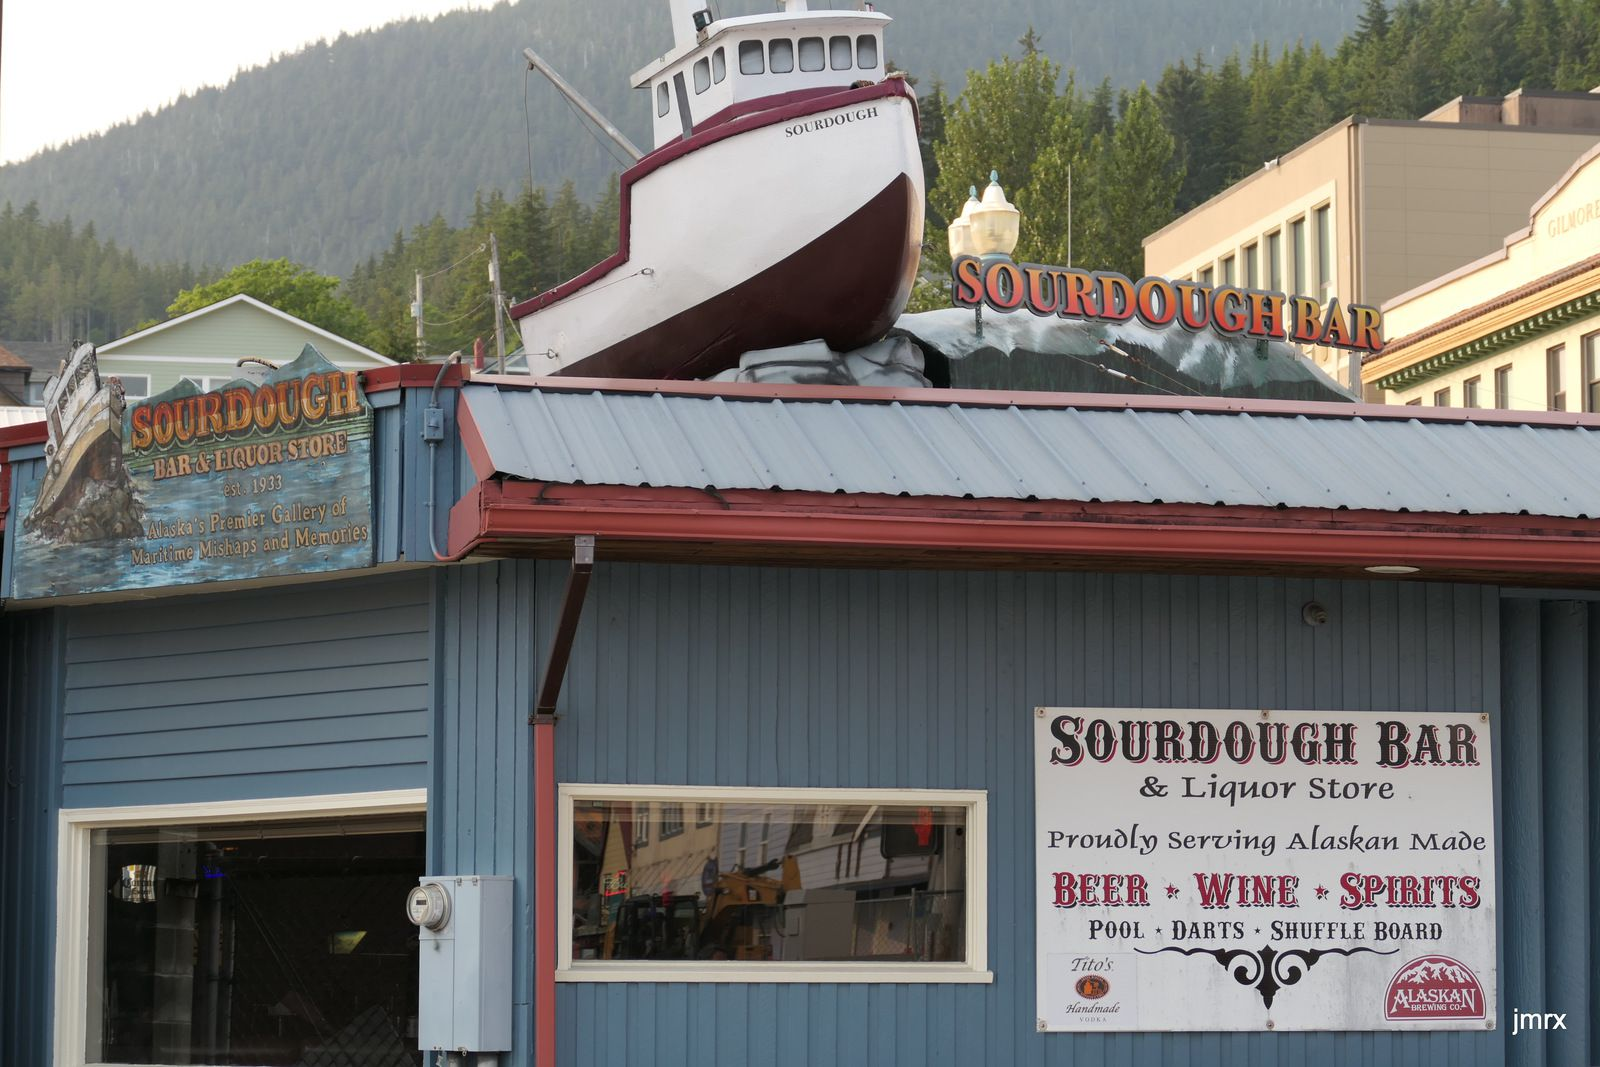 Ketchikan. Porte d'accès à l'Alaska. Aéroport international. Nous accueillons Michel.Noria de paquebots gigantesques. Le soir plus de touristes: on se retrouve au Surdough Bar.